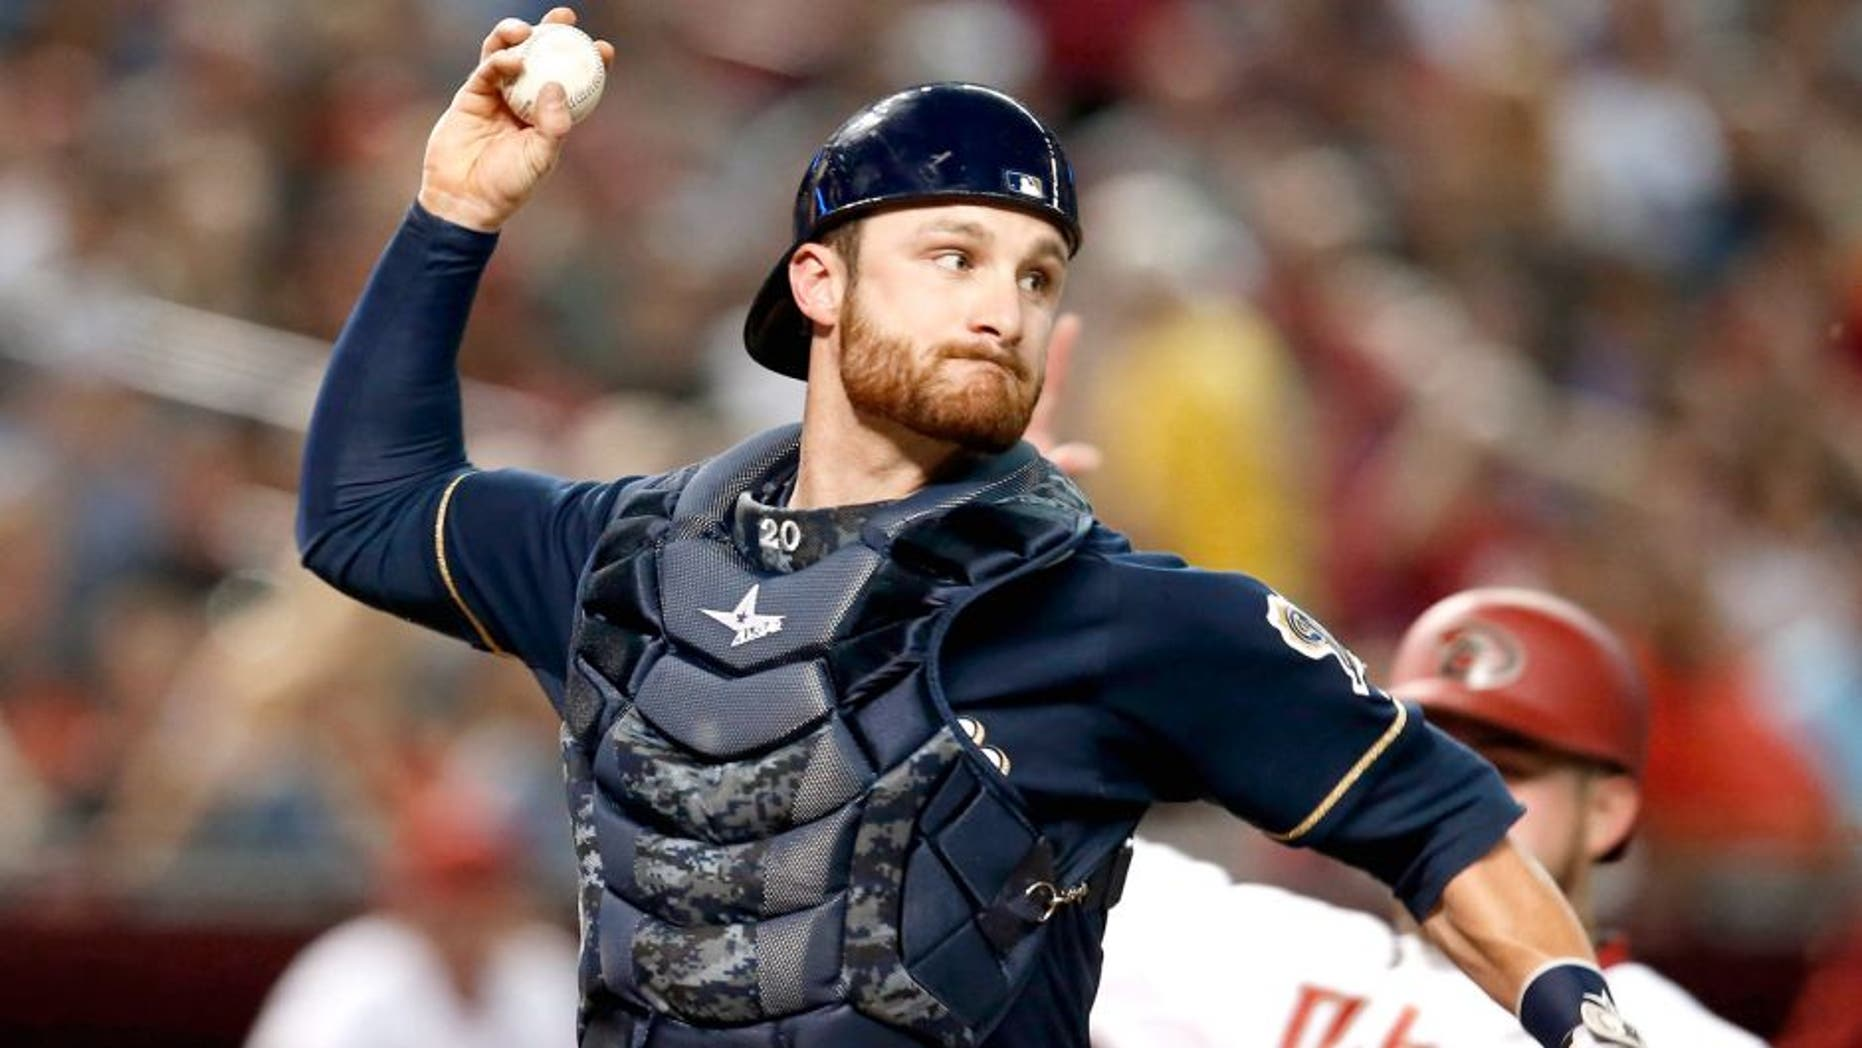 Jul 24, 2015; Phoenix, AZ, USA; Milwaukee Brewers catcher Jonathan Lucroy (20) turns the double play while avoiding Arizona Diamondbacks right fielder Ender Inciarte (5) in the third inning at Chase Field. Mandatory Credit: Rick Scuteri-USA TODAY Sports